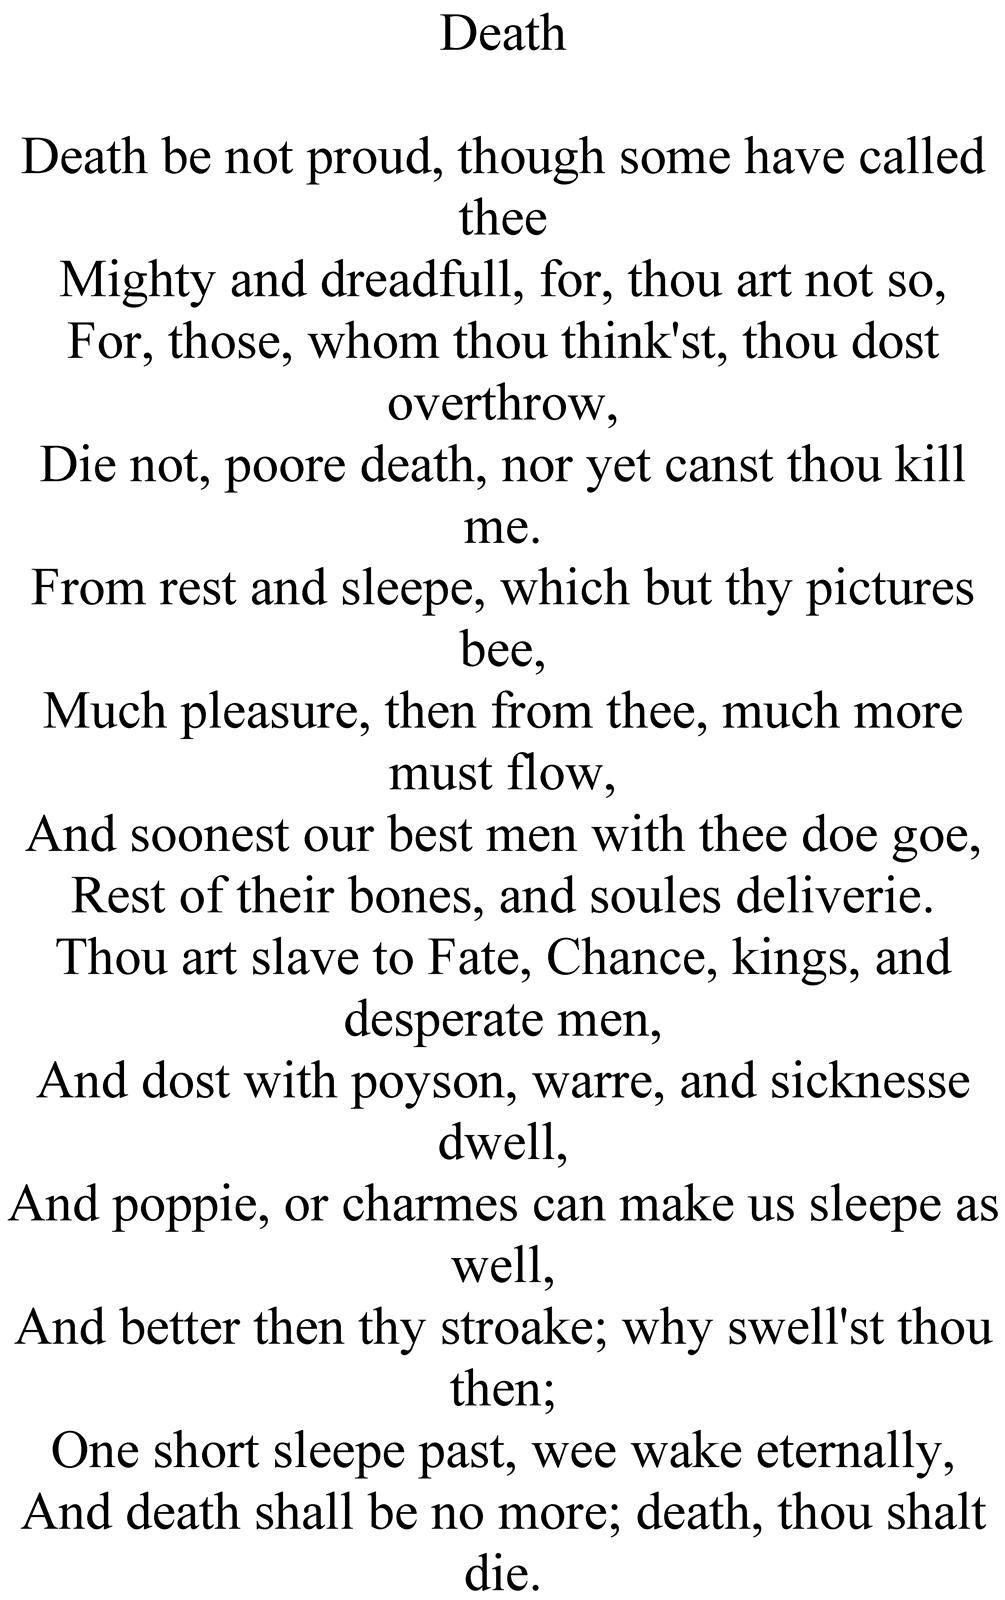 death be not proud by john donne Death be not proud by john donne (1572-1631) death be not proud, though some have called thee mighty and dreadfull, for, thou art not so for, those, whom thou think'st, thou dost overthrow die not, poore death, nor yet canst thou kill me from rest and sleepe, which but thy pictures bee much pleasure, then from.